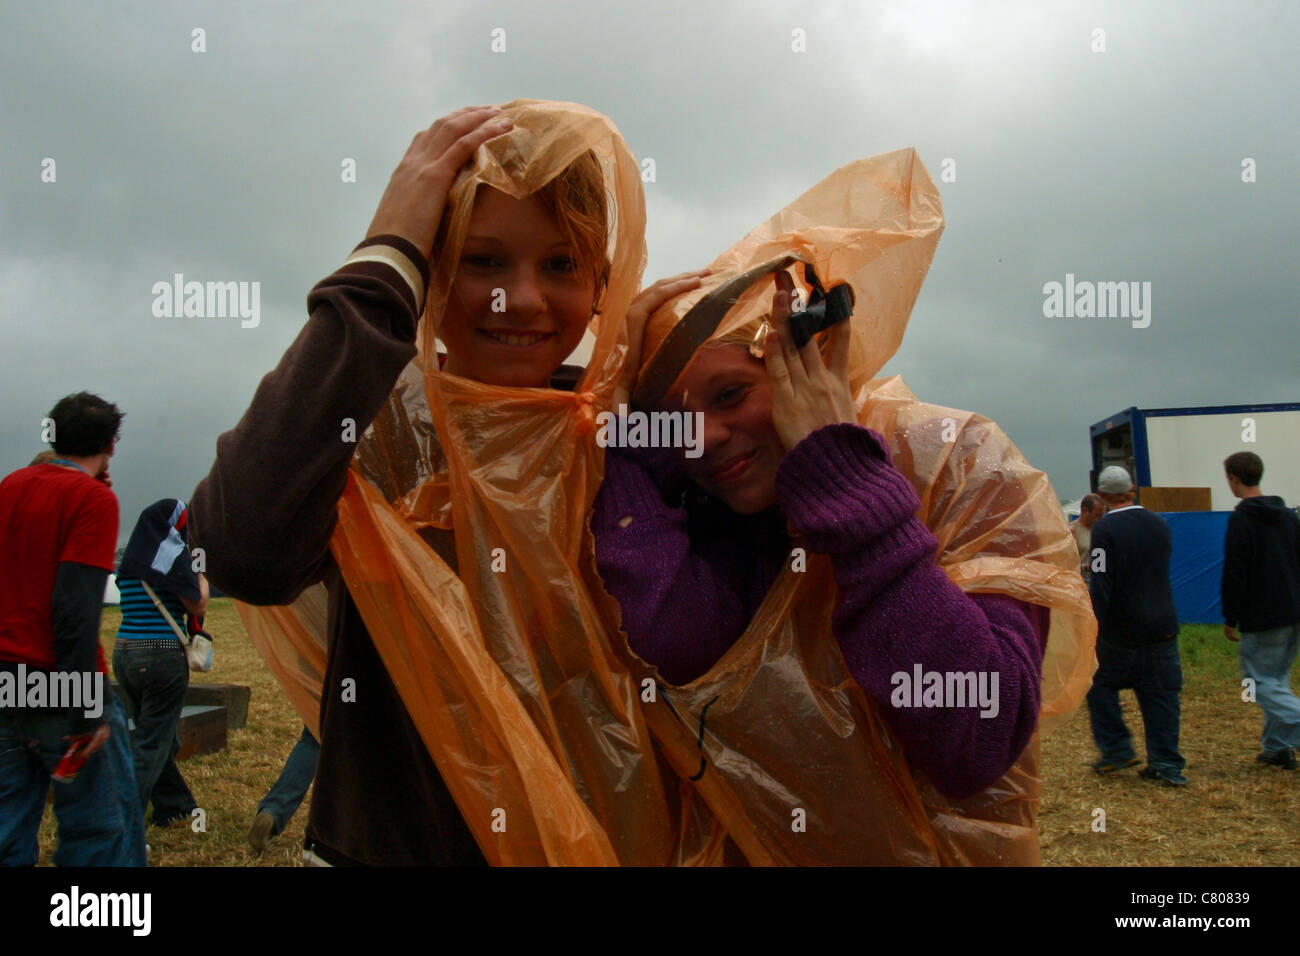 Punters sheltering from the rain at the Glastonbury Festival 2003 - Stock Image